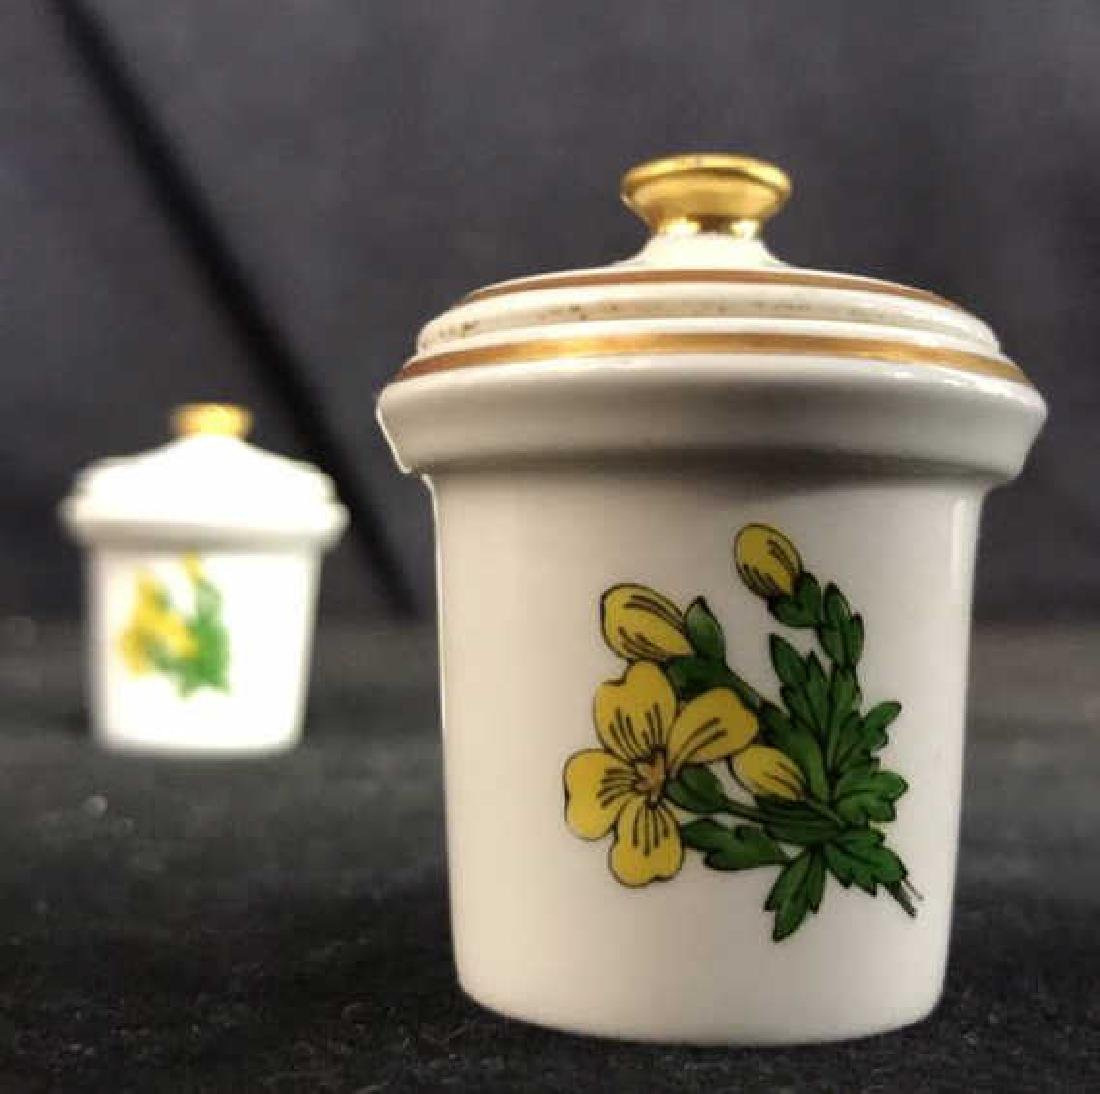 NEPETA SPODE Fine Bone China Inkwell - 9